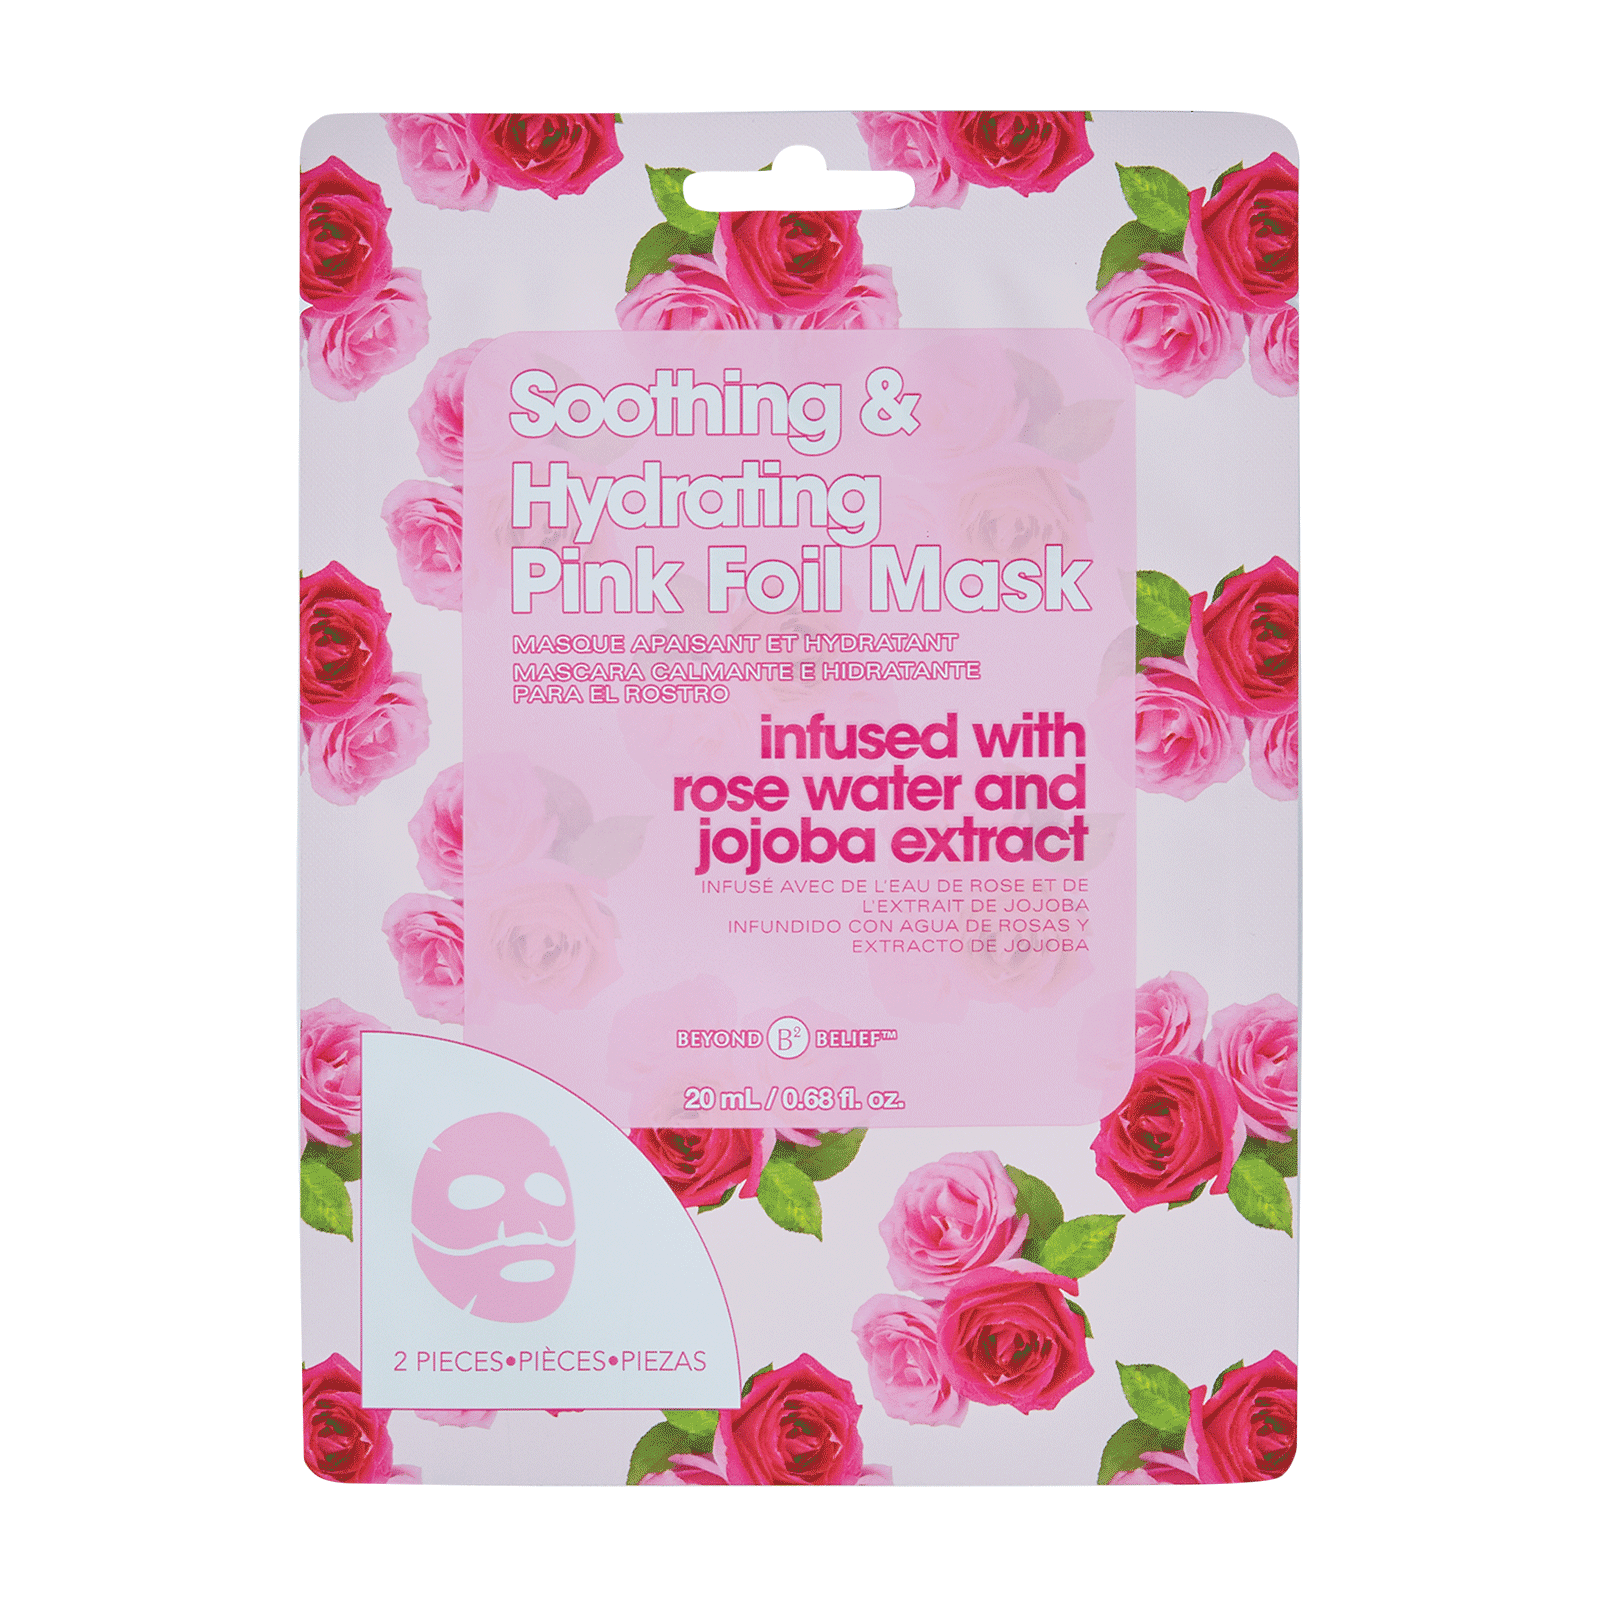 Soothing and Hydrating Pink Foil Mask